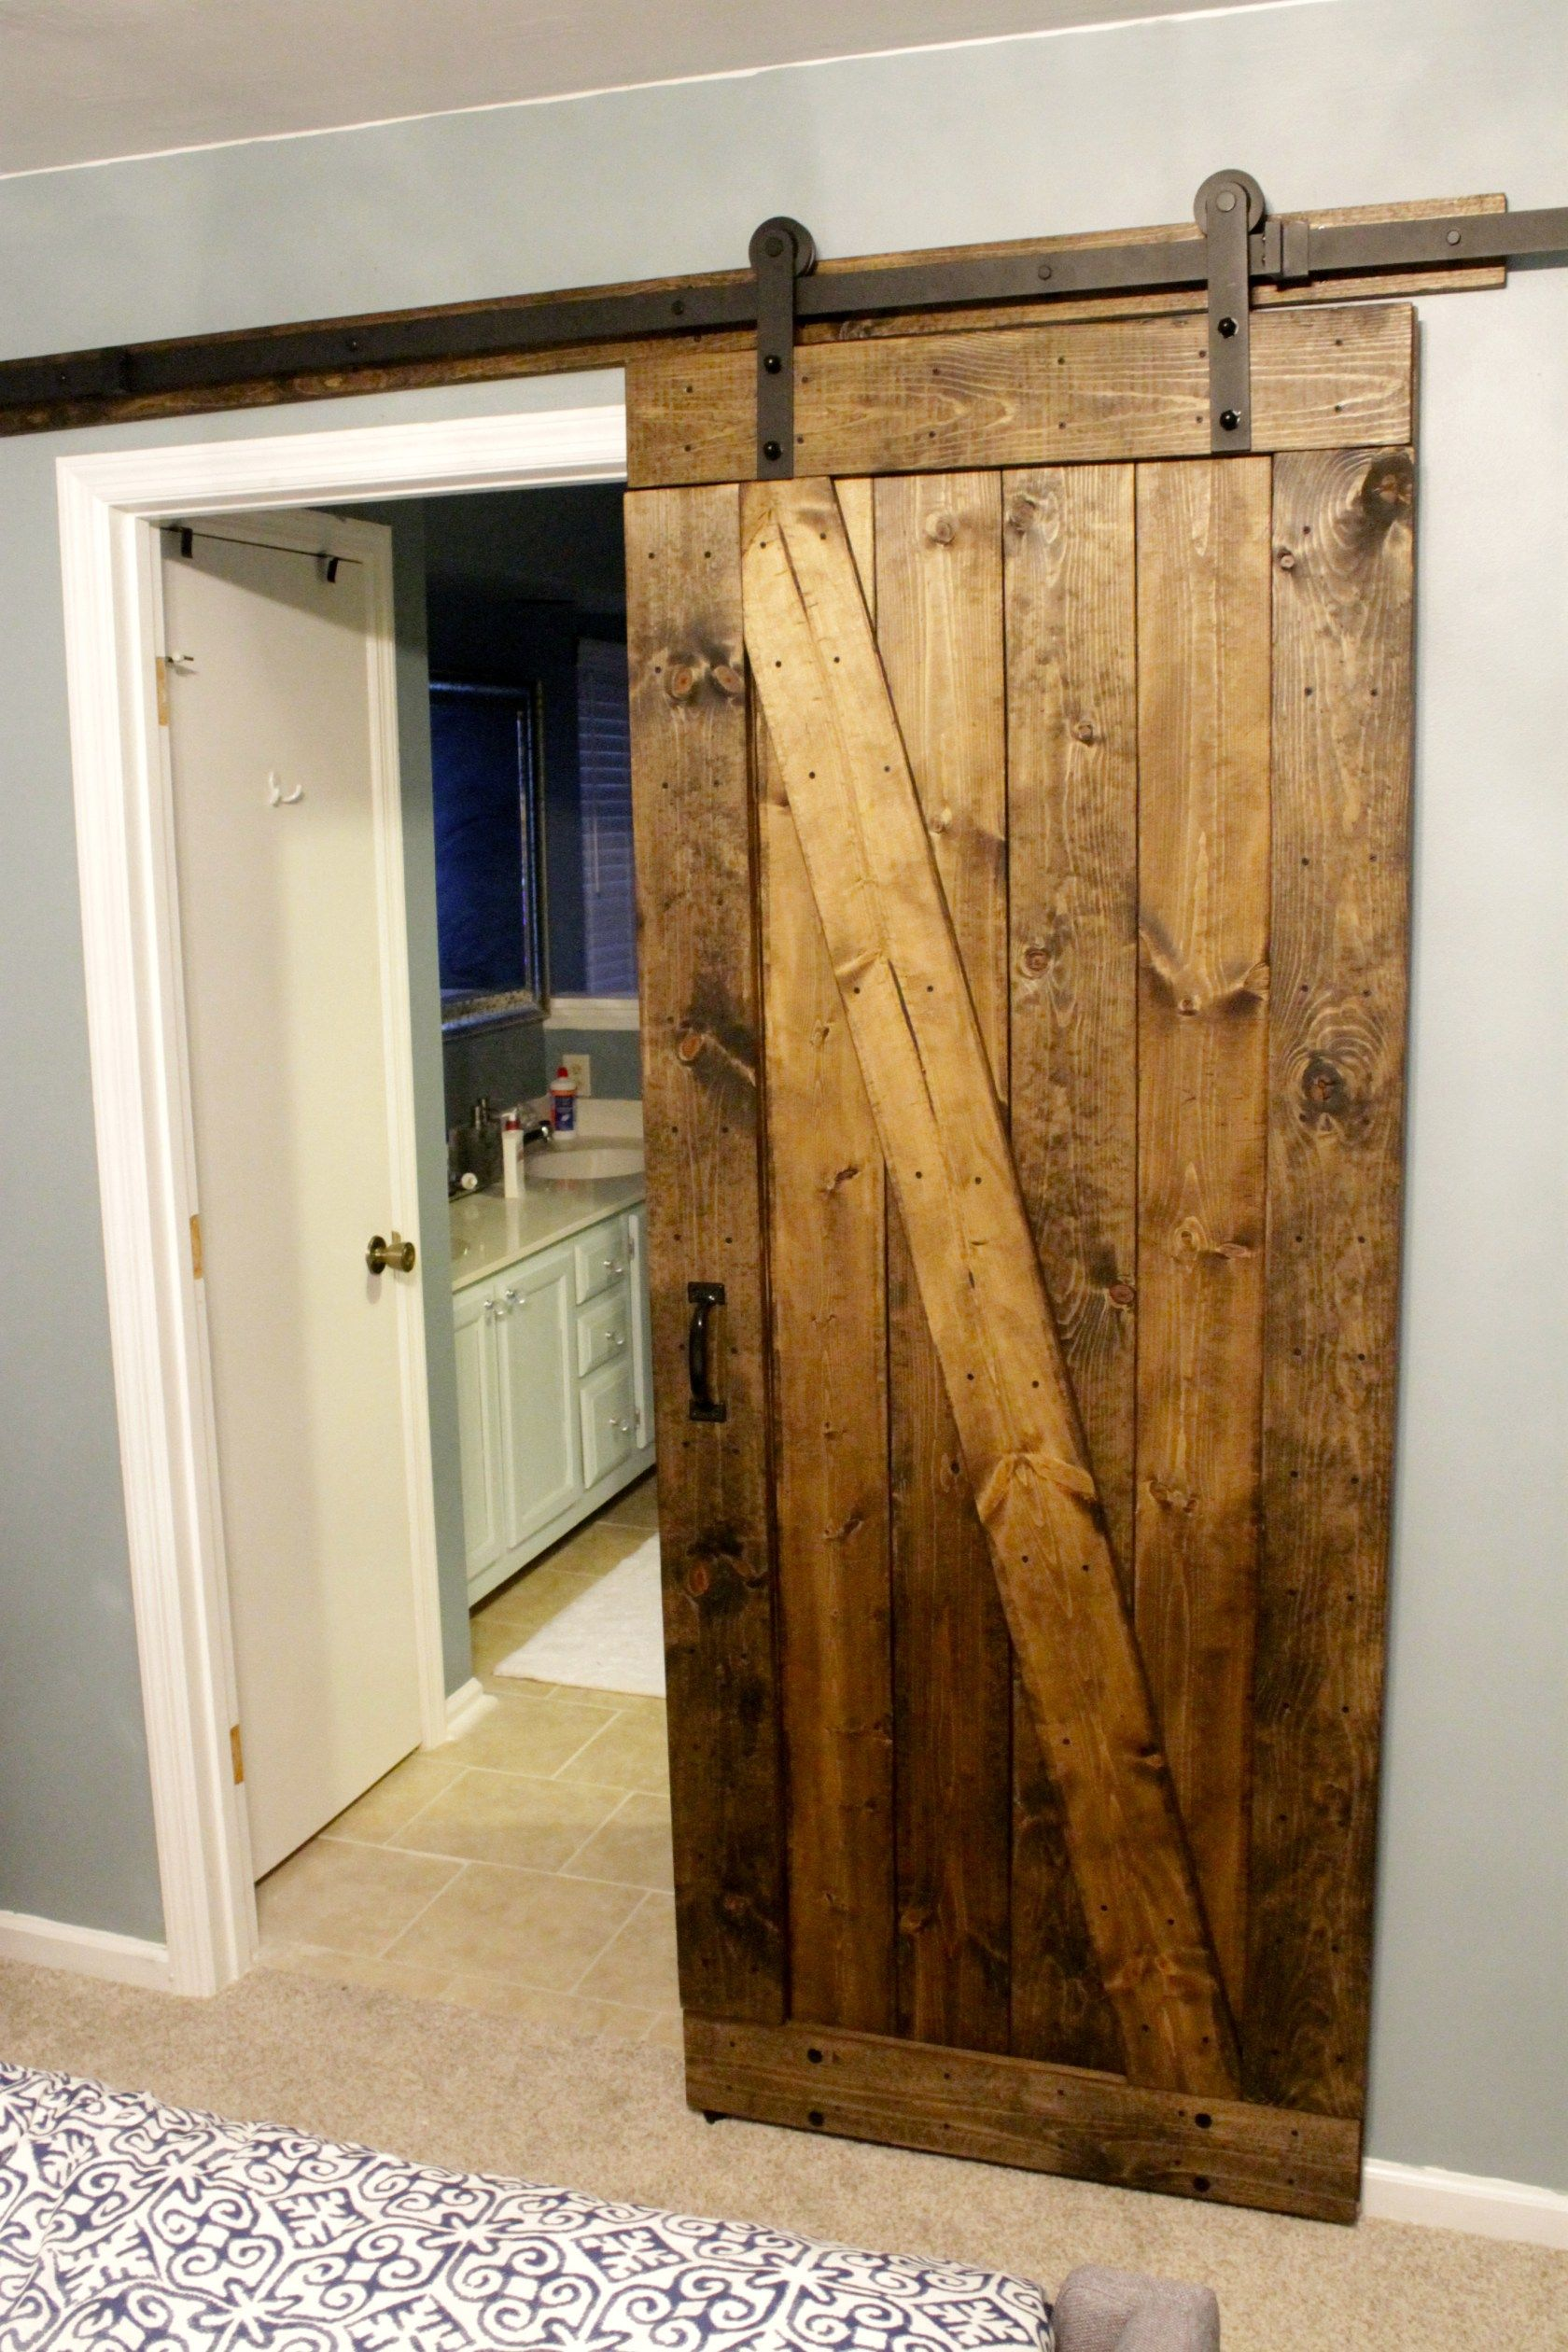 Easiest Cheapest Way To Build A Rustic Barn Door Inside My Home